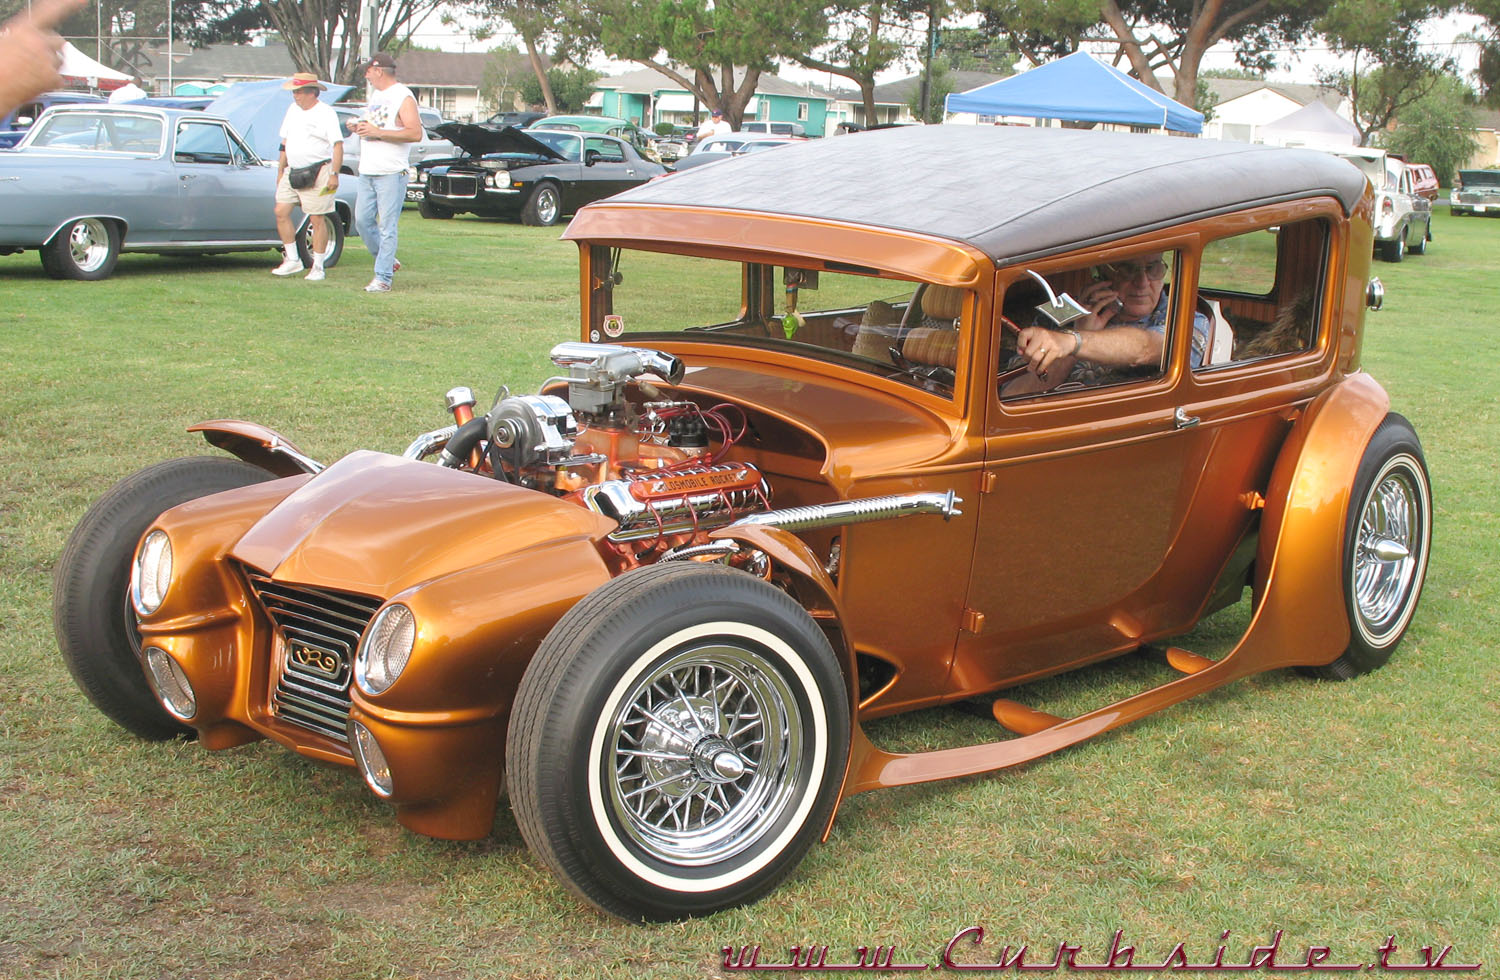 The Rod Riguez, a heavily-modified 1930 Ford Model A Coupe.